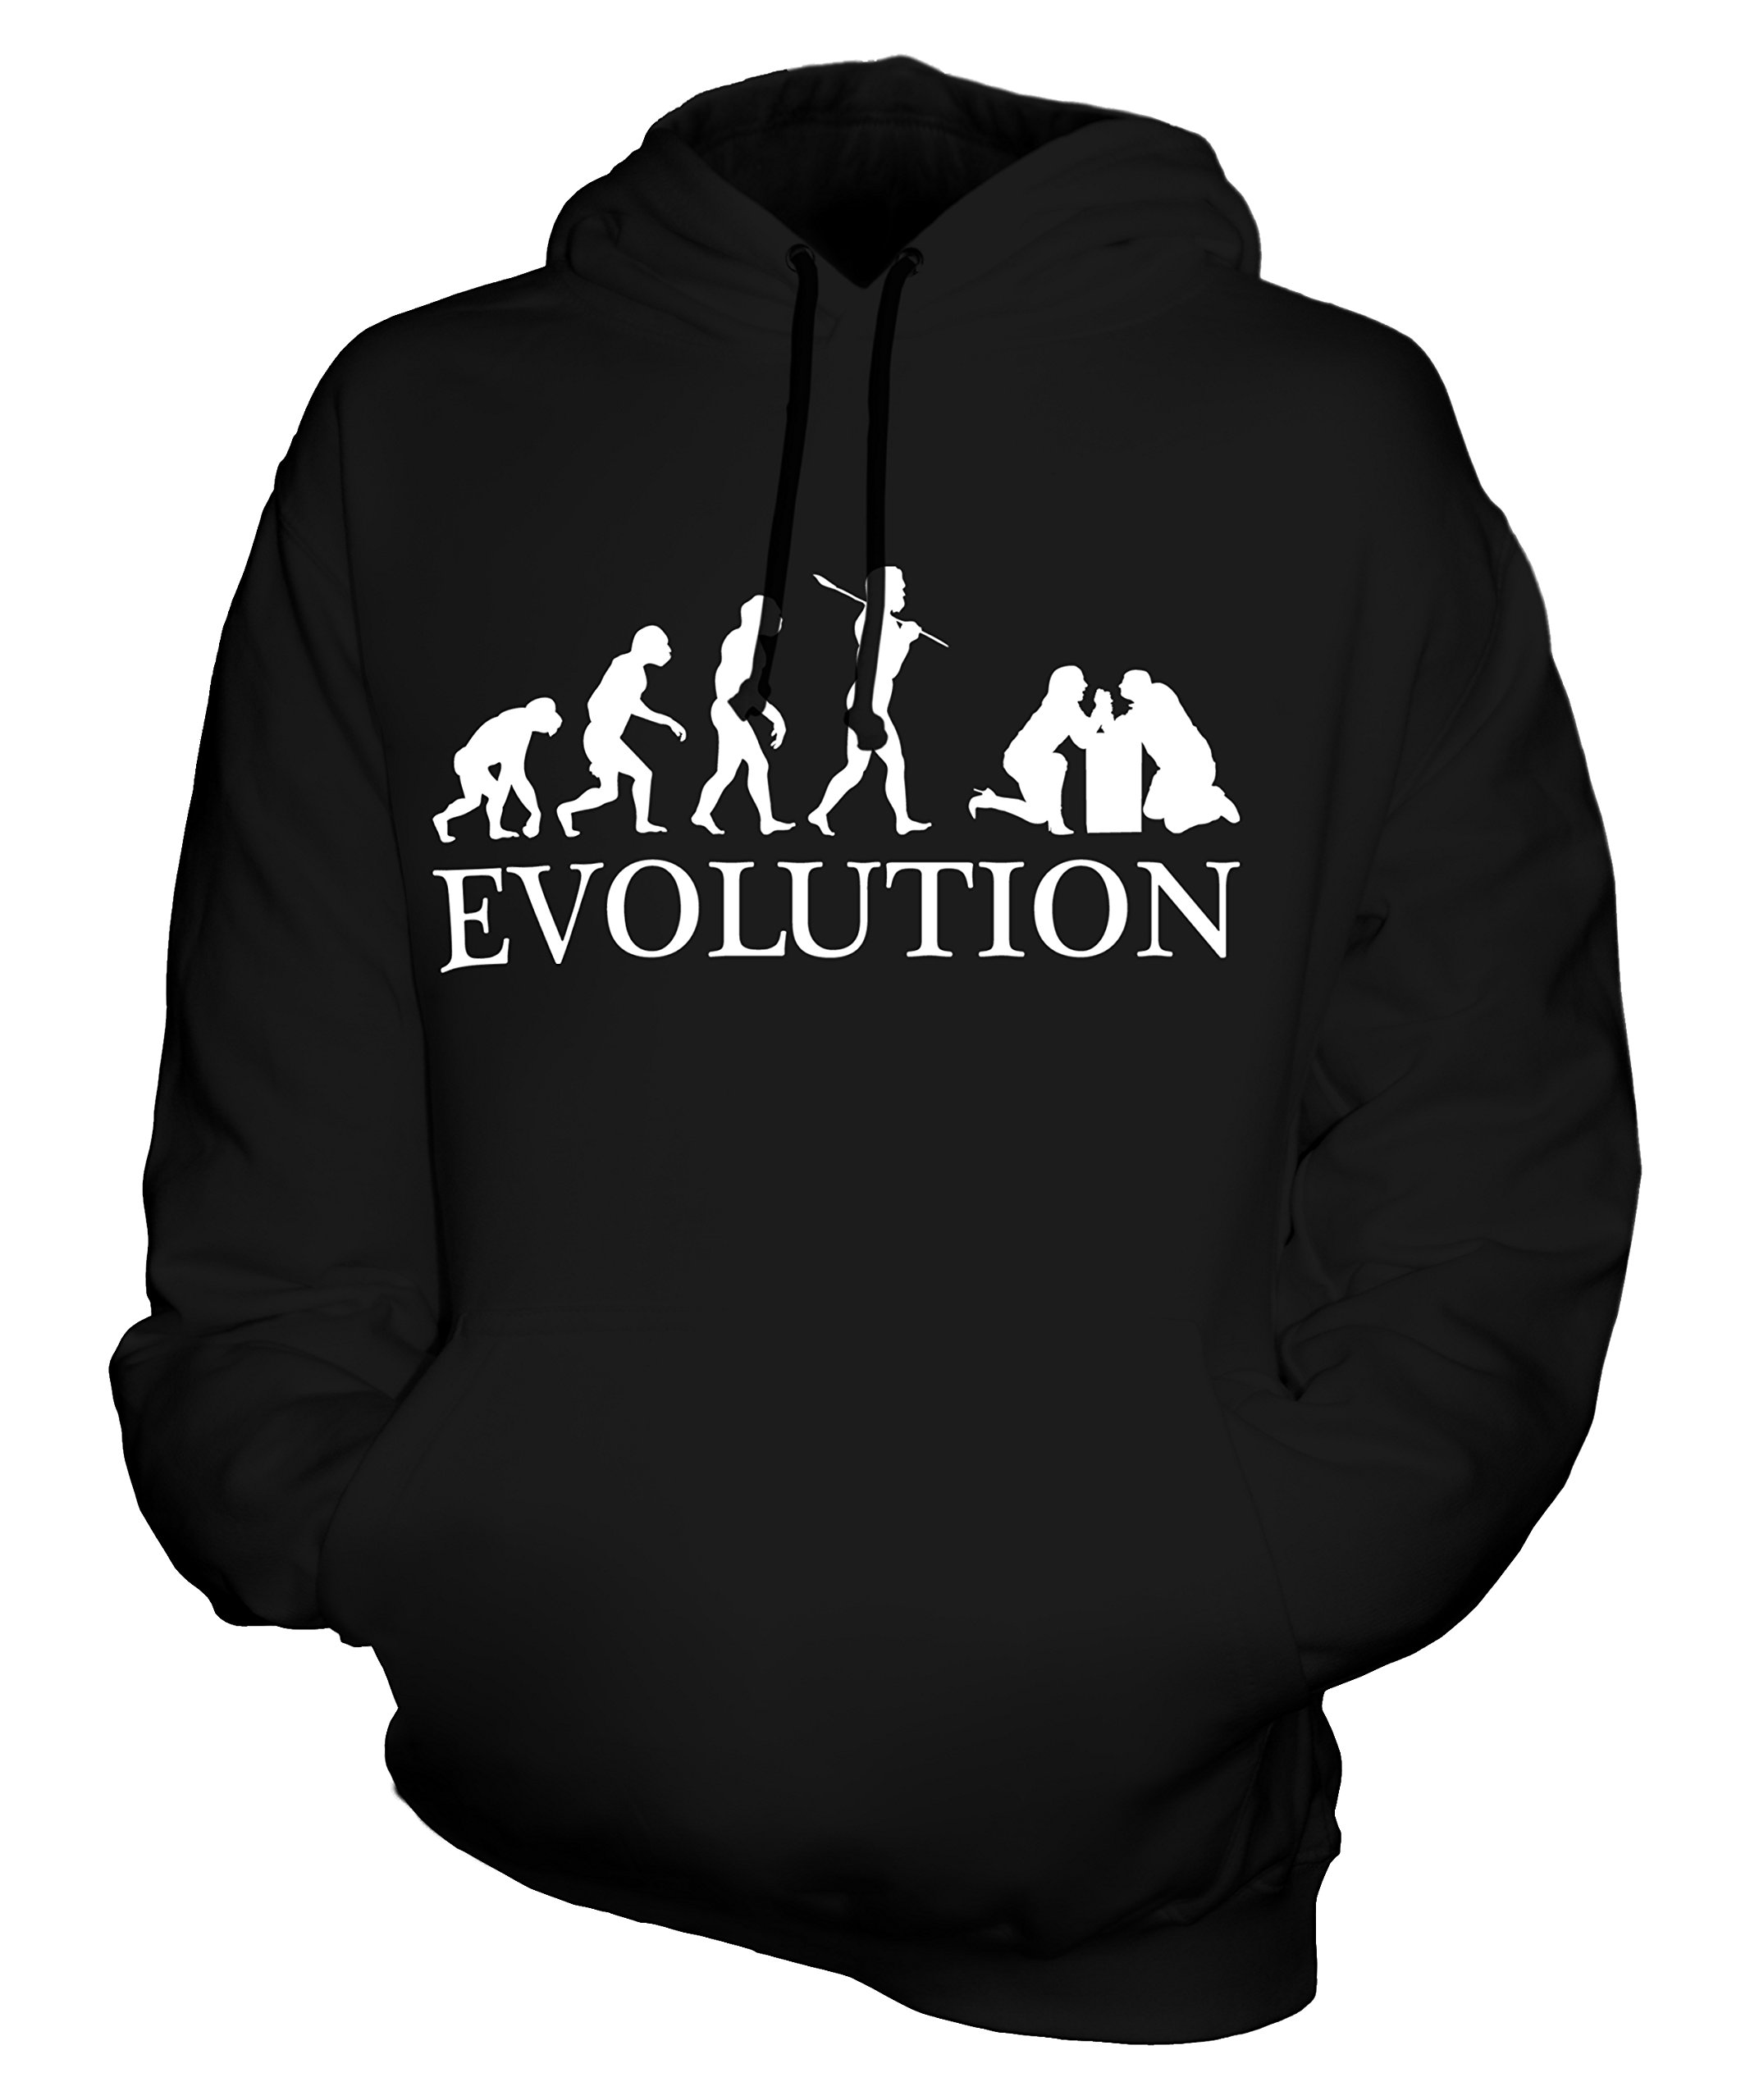 CandyMix Unisex Arm Wrestling Evolution of Man Mens/Womens Hoodie, Size Small, Color Black by CandyMix